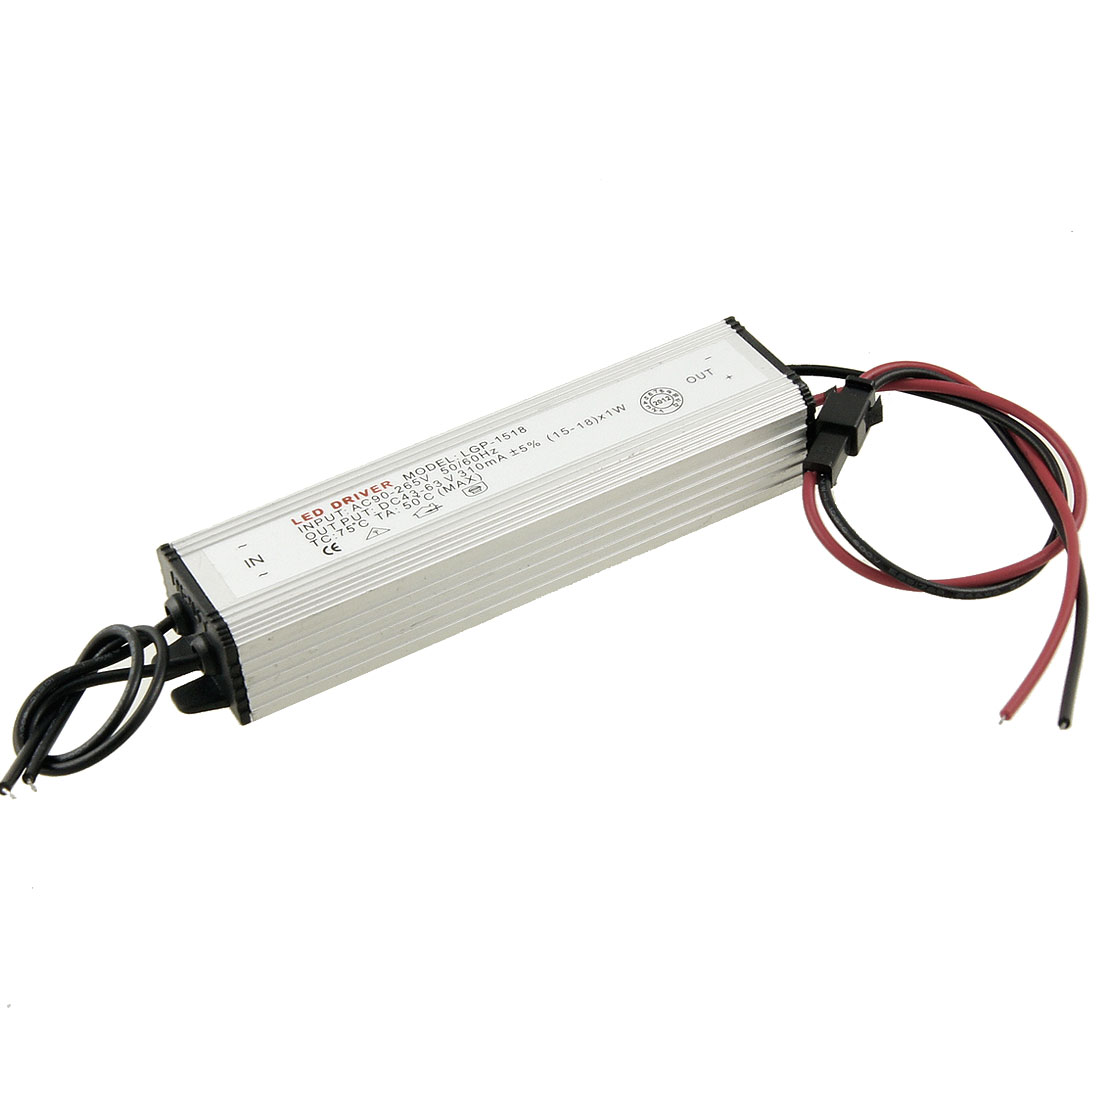 AC 110-220V DC 43-63V 310mA Driver Power Supply for (15-18)x1W LED Striplight